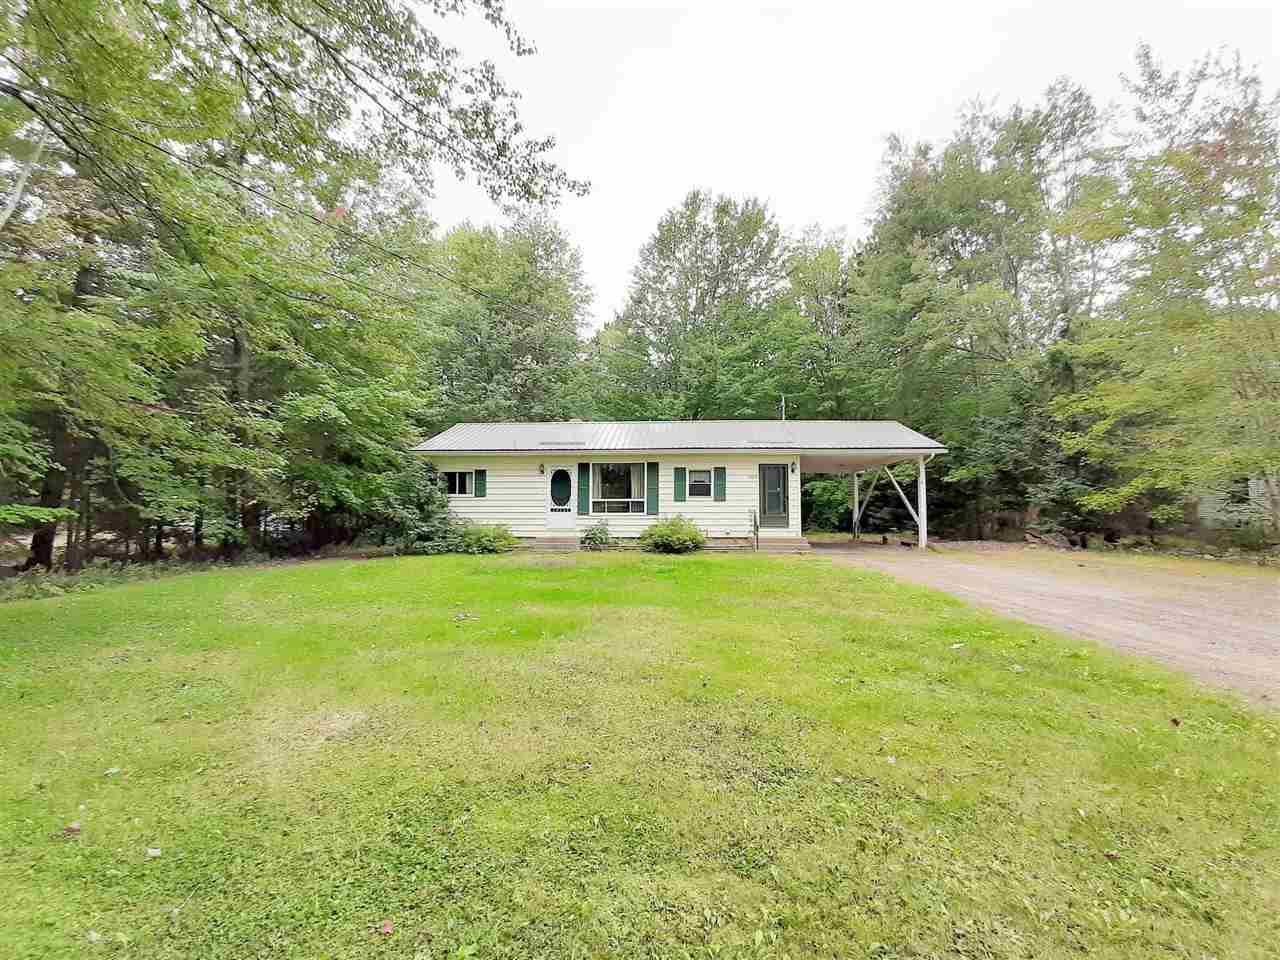 Main Photo: 1509 Marshall Road in Kingston: 404-Kings County Residential for sale (Annapolis Valley)  : MLS®# 202019607